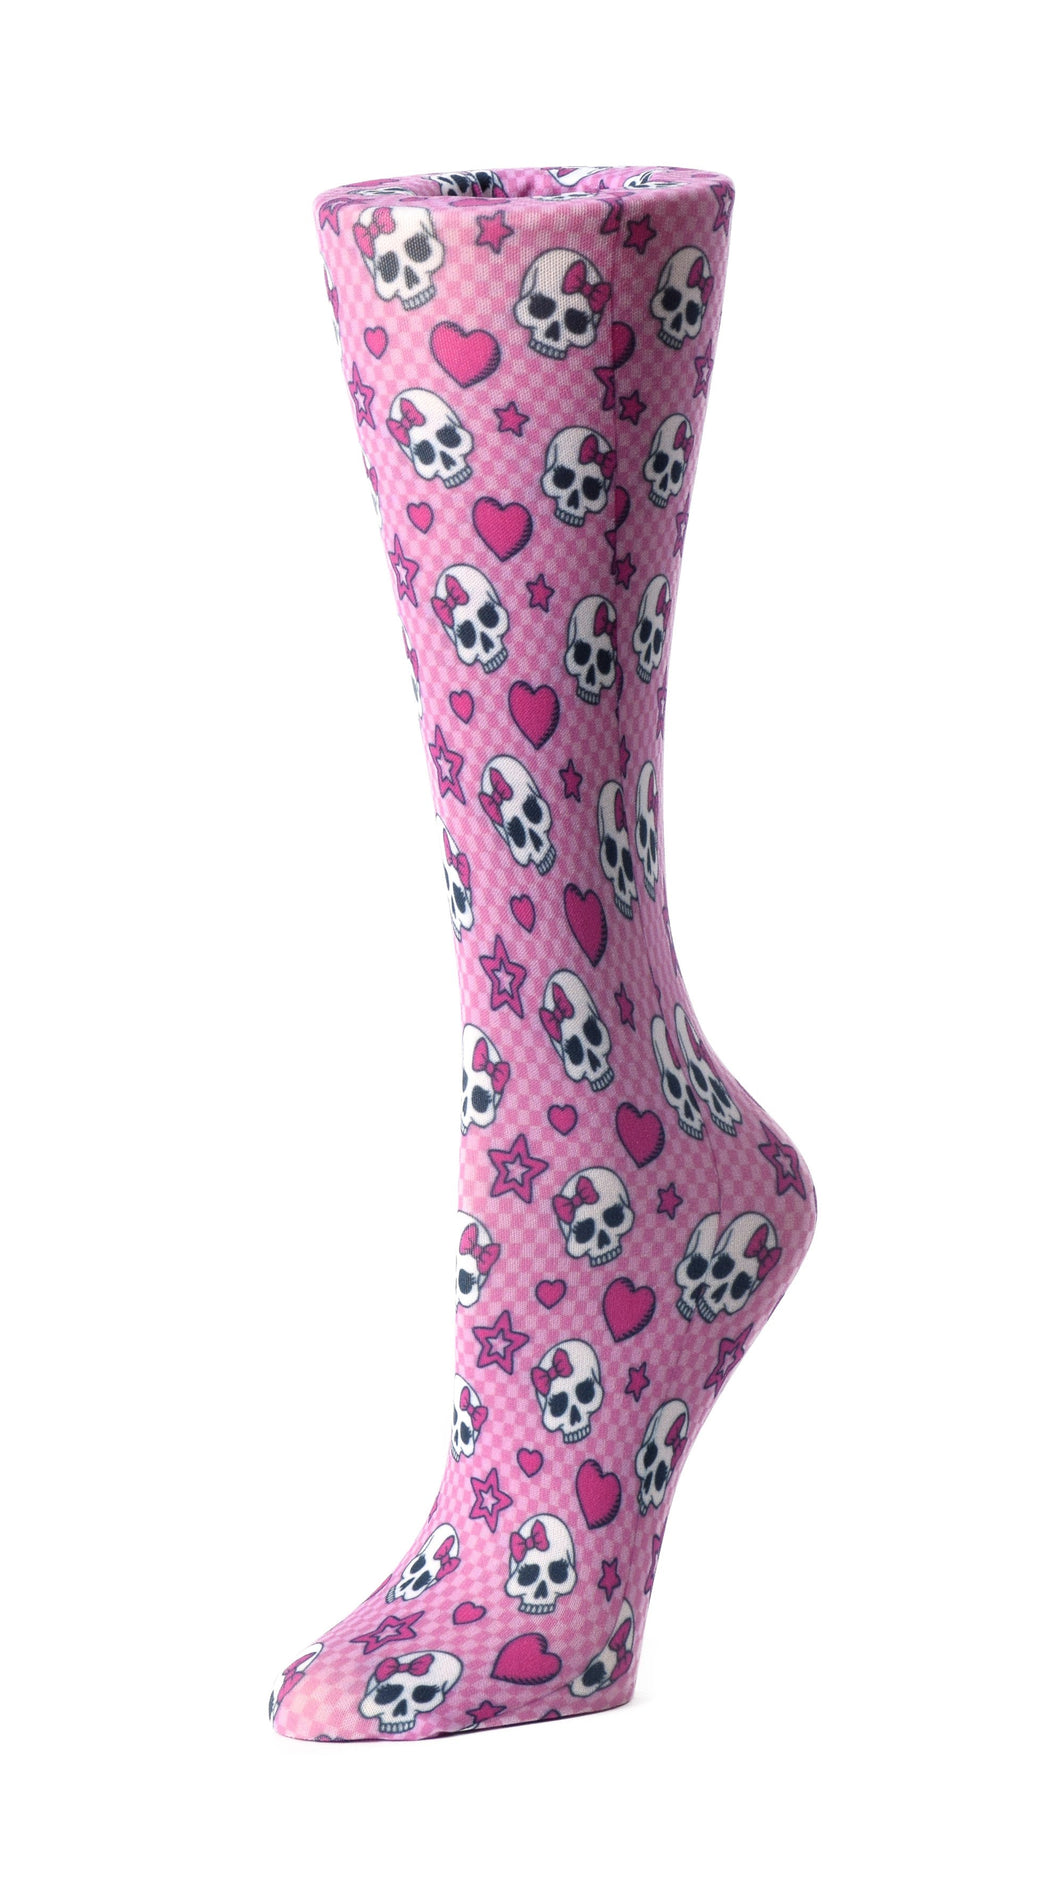 Cutieful Therapeutic Compression Socks - Pink Skulls